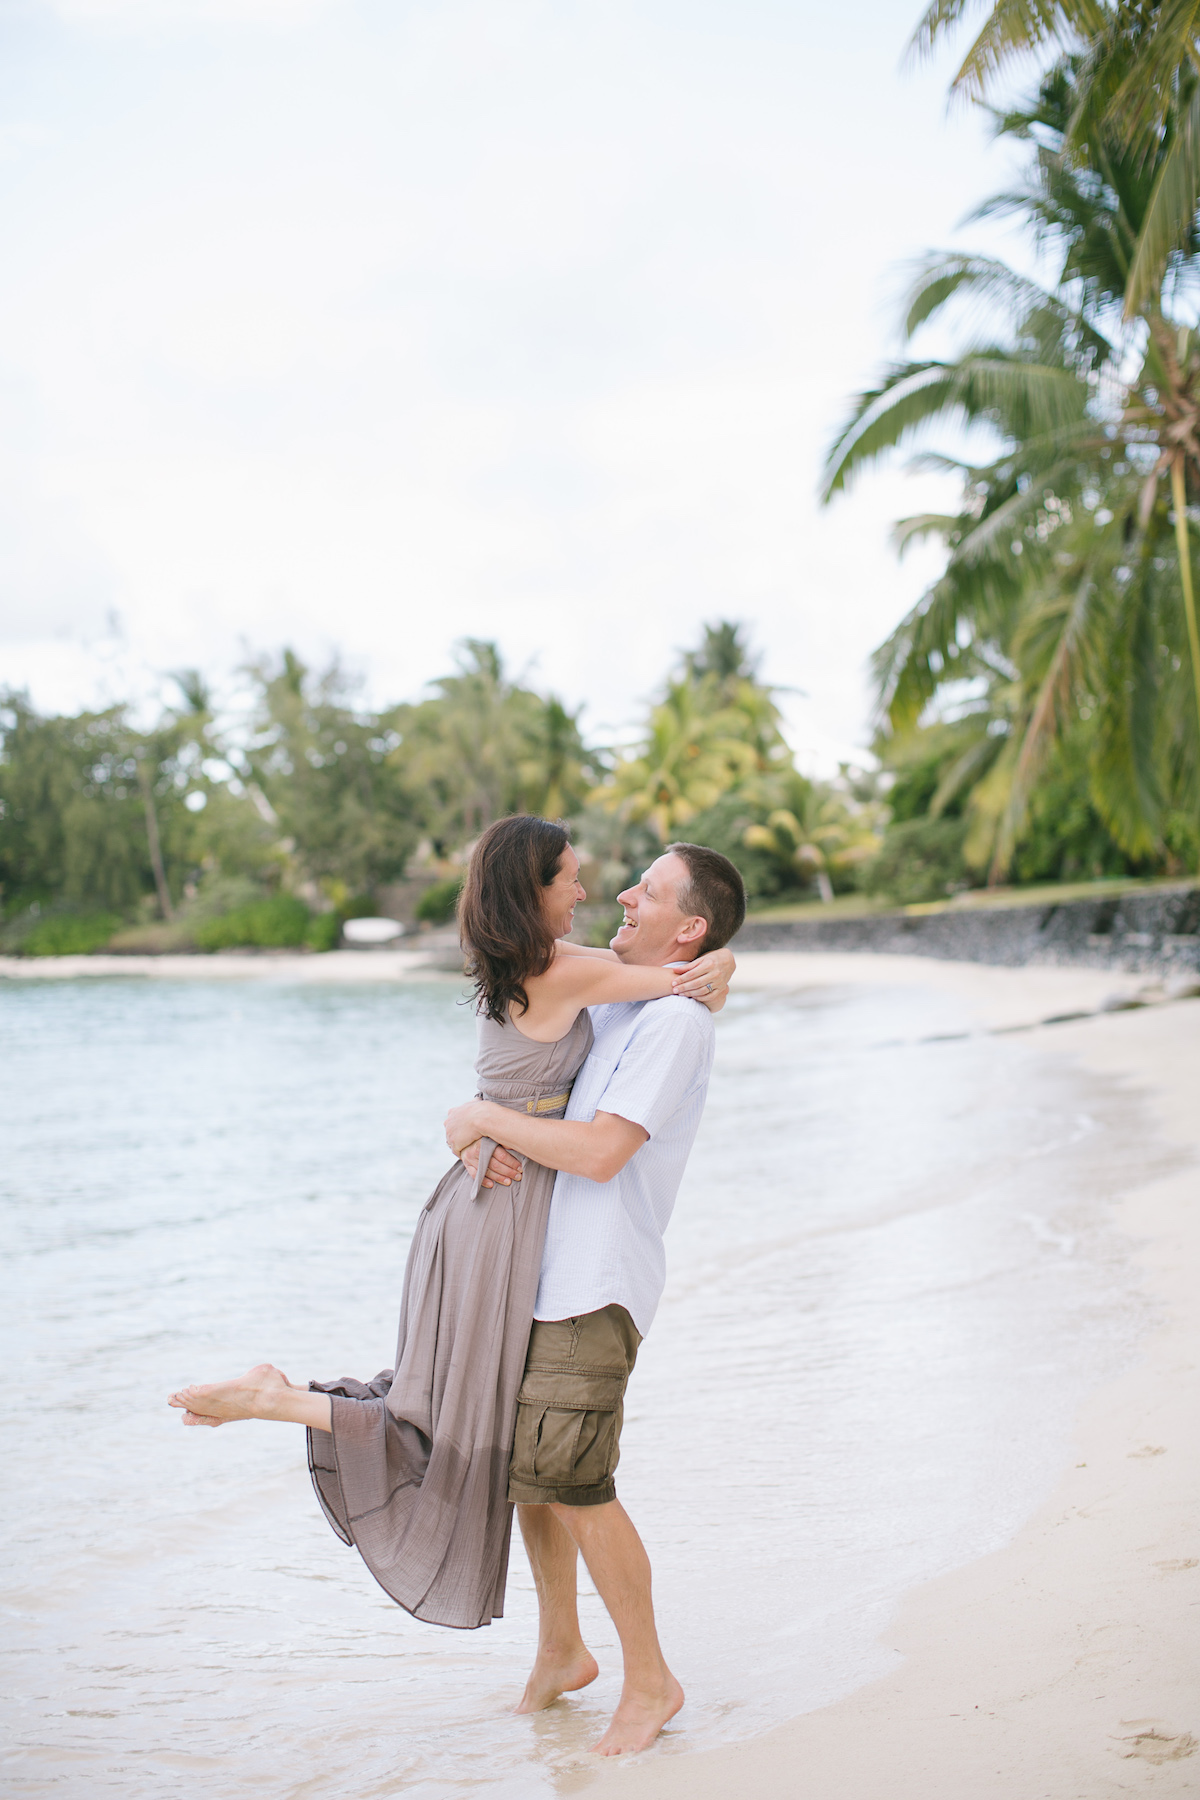 Flytographer Mayline in Mauritius